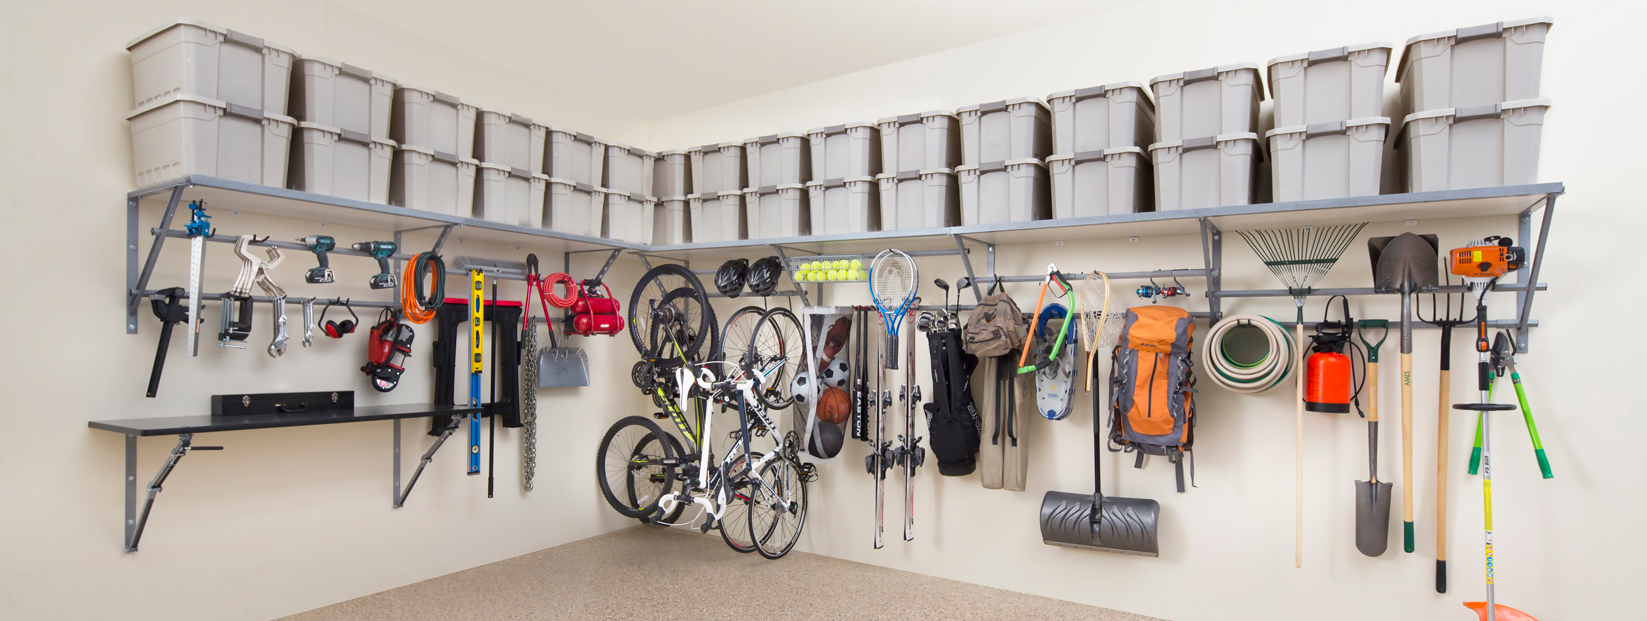 Garage Shelving Fort Wayne